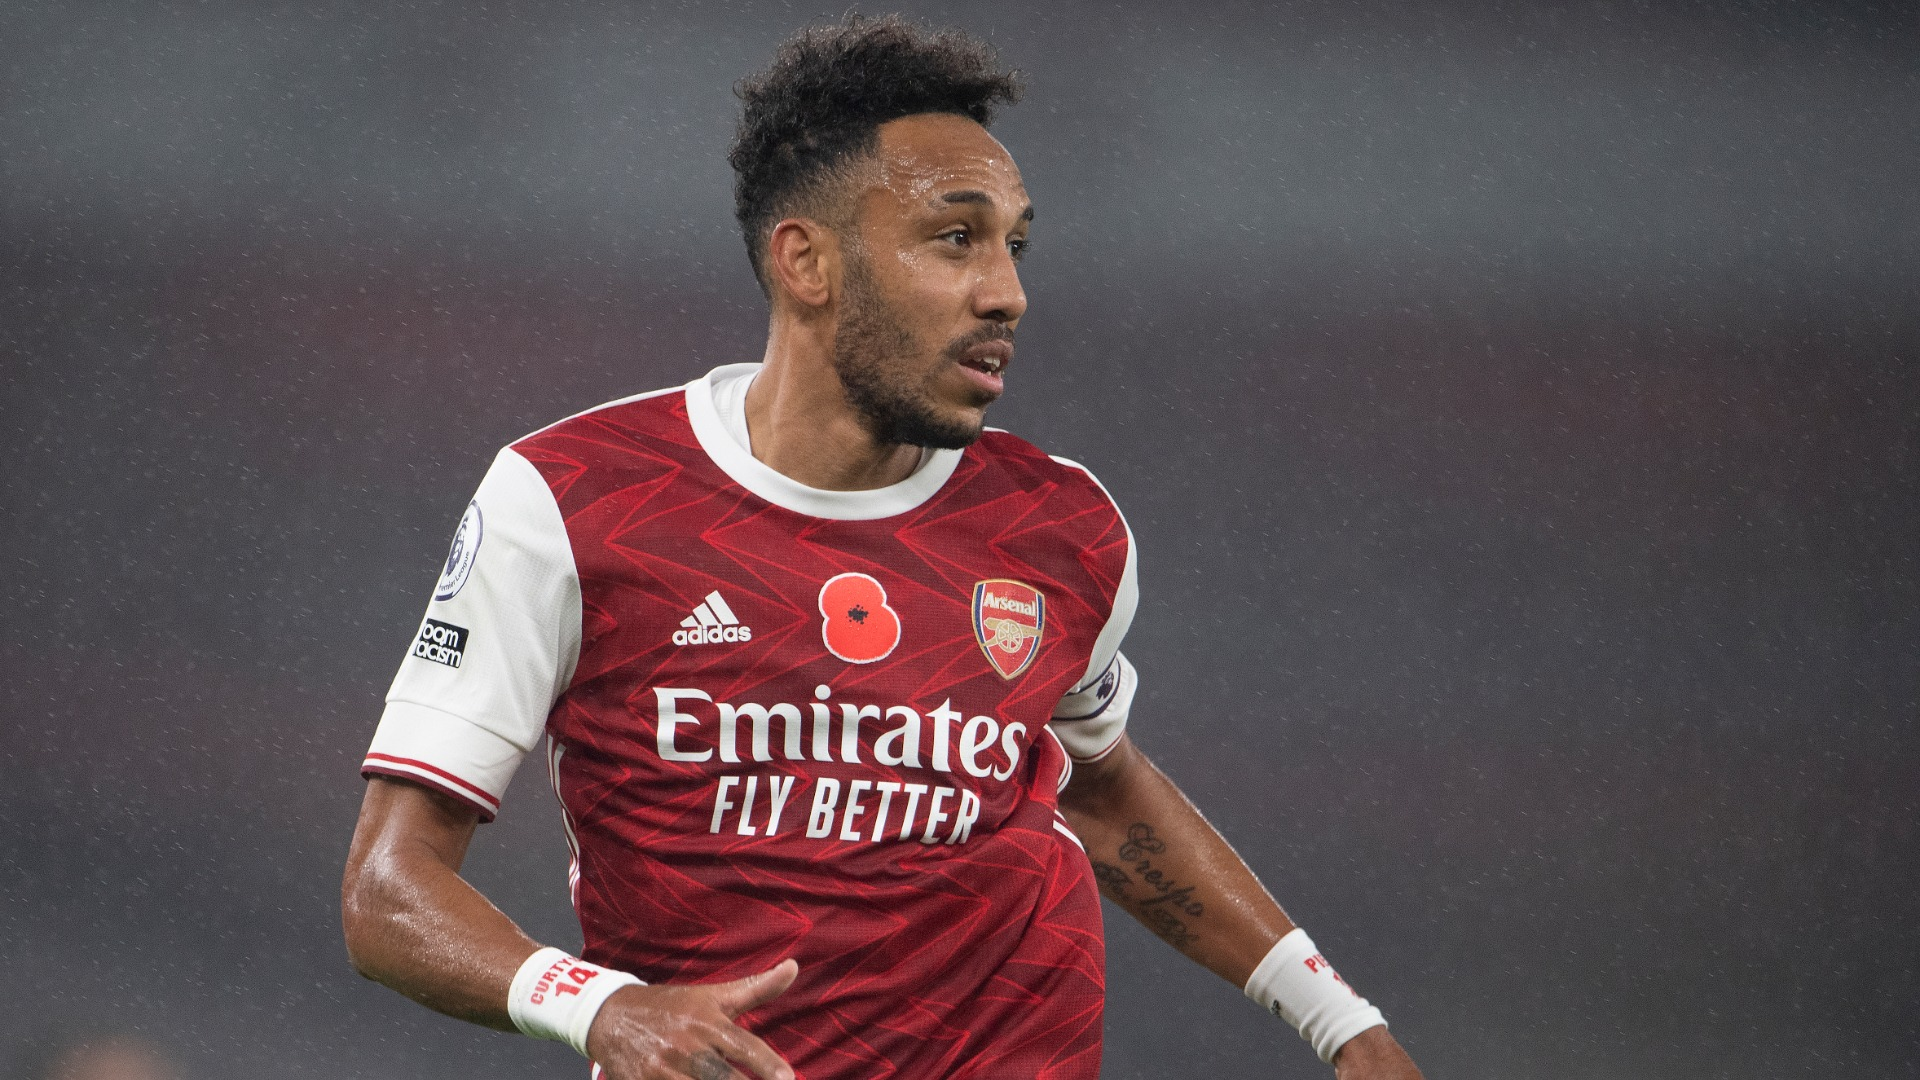 Aubameyang reveals malaria scare: Arsenal star spends 'a few days' in hospital